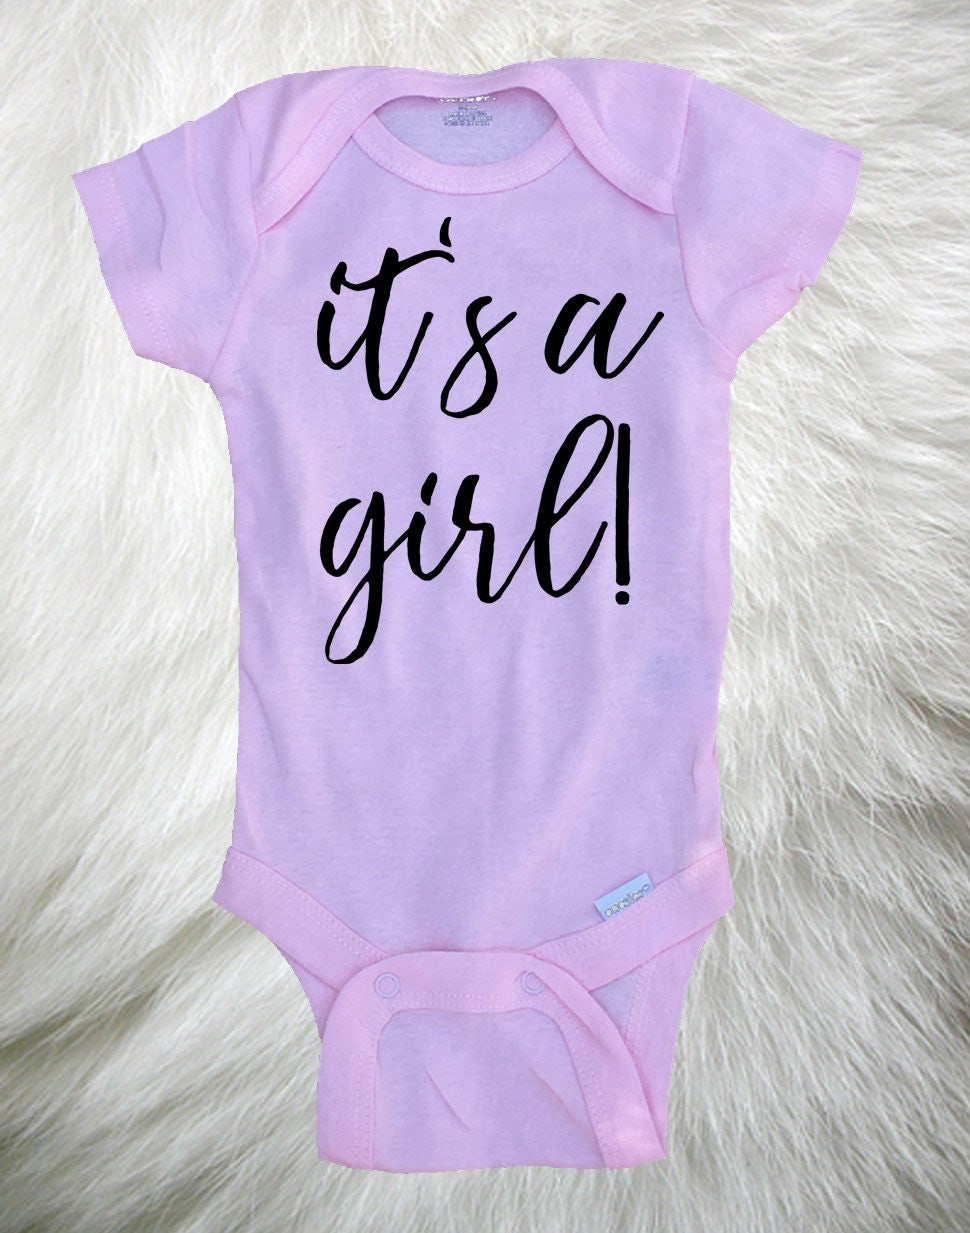 Baby Clothes Gender Reveal